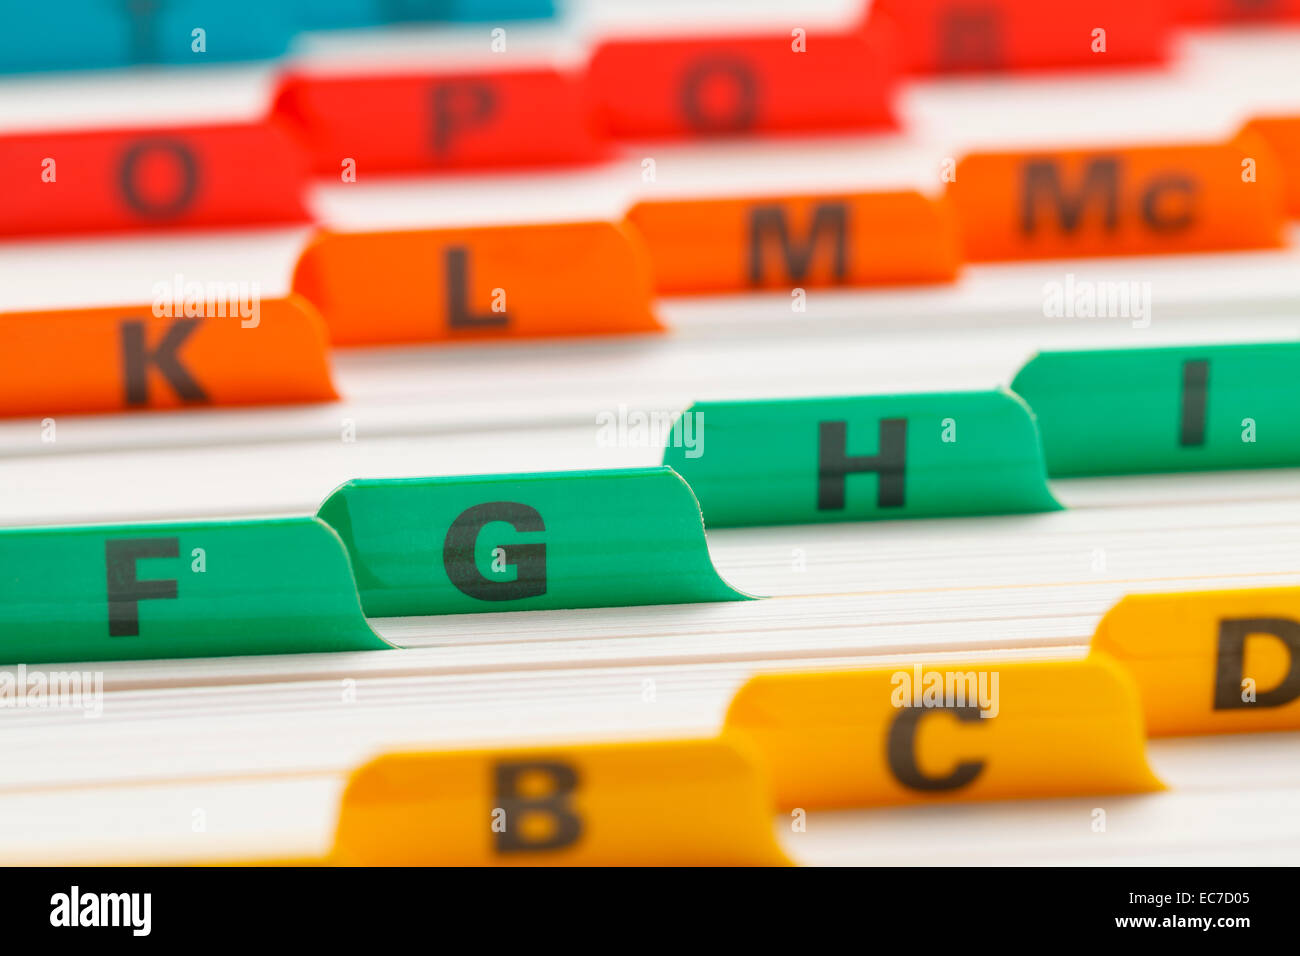 Alphabetical color coded business card file system stock photo alphabetical color coded business card file system magicingreecefo Choice Image